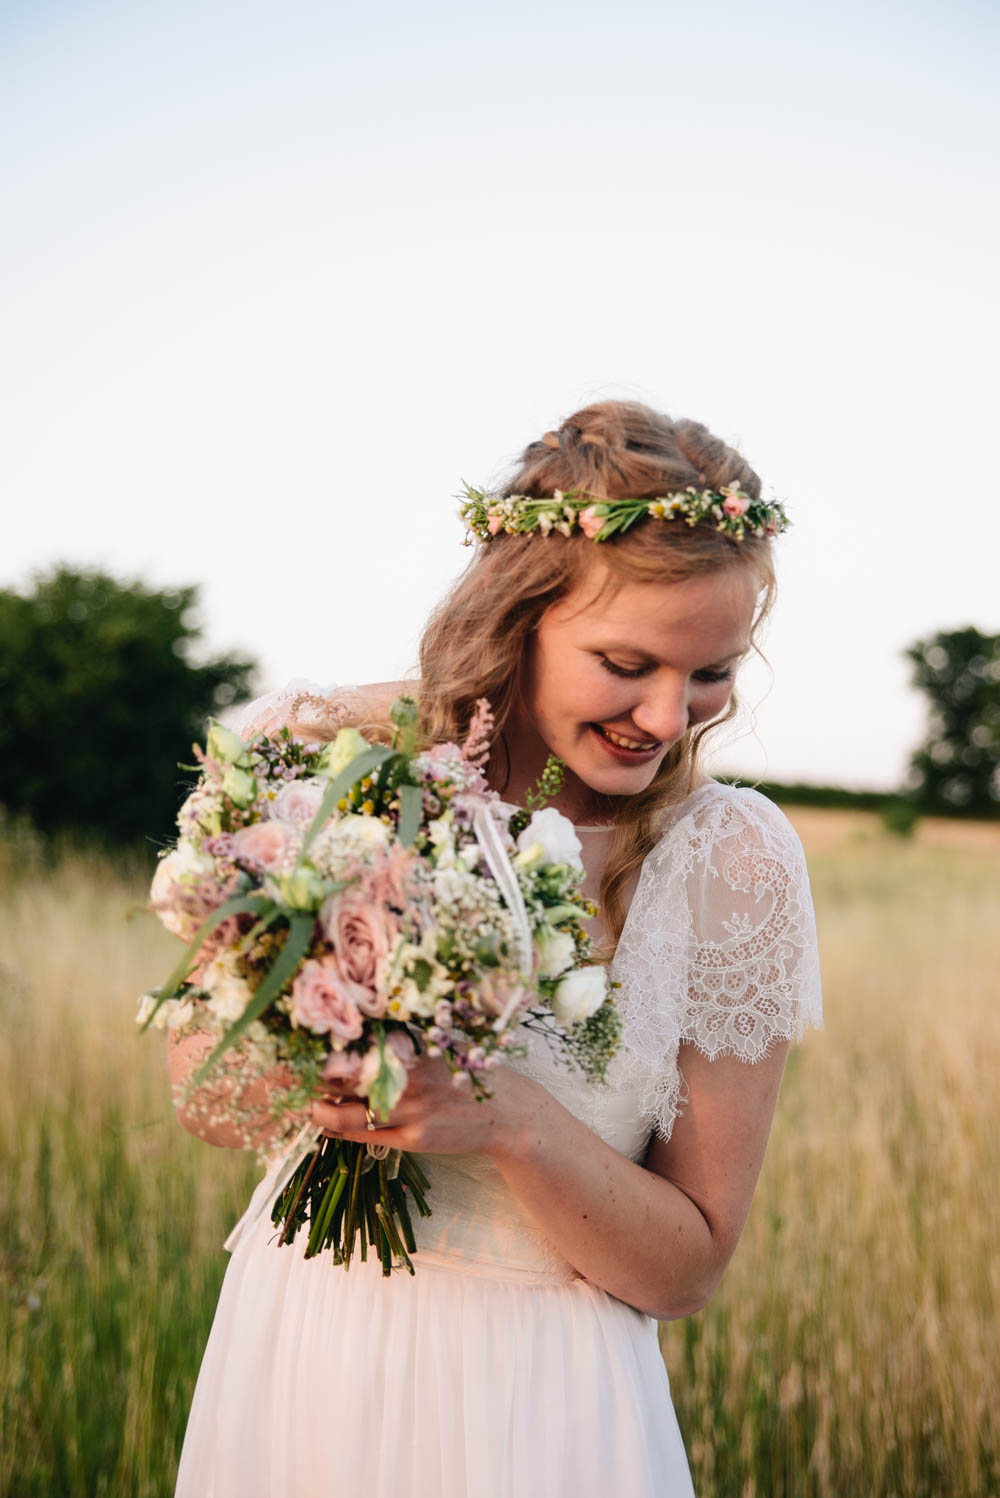 Bride In Bespoke Lace Wedding Dress Flower Crown For A Diy Marquee